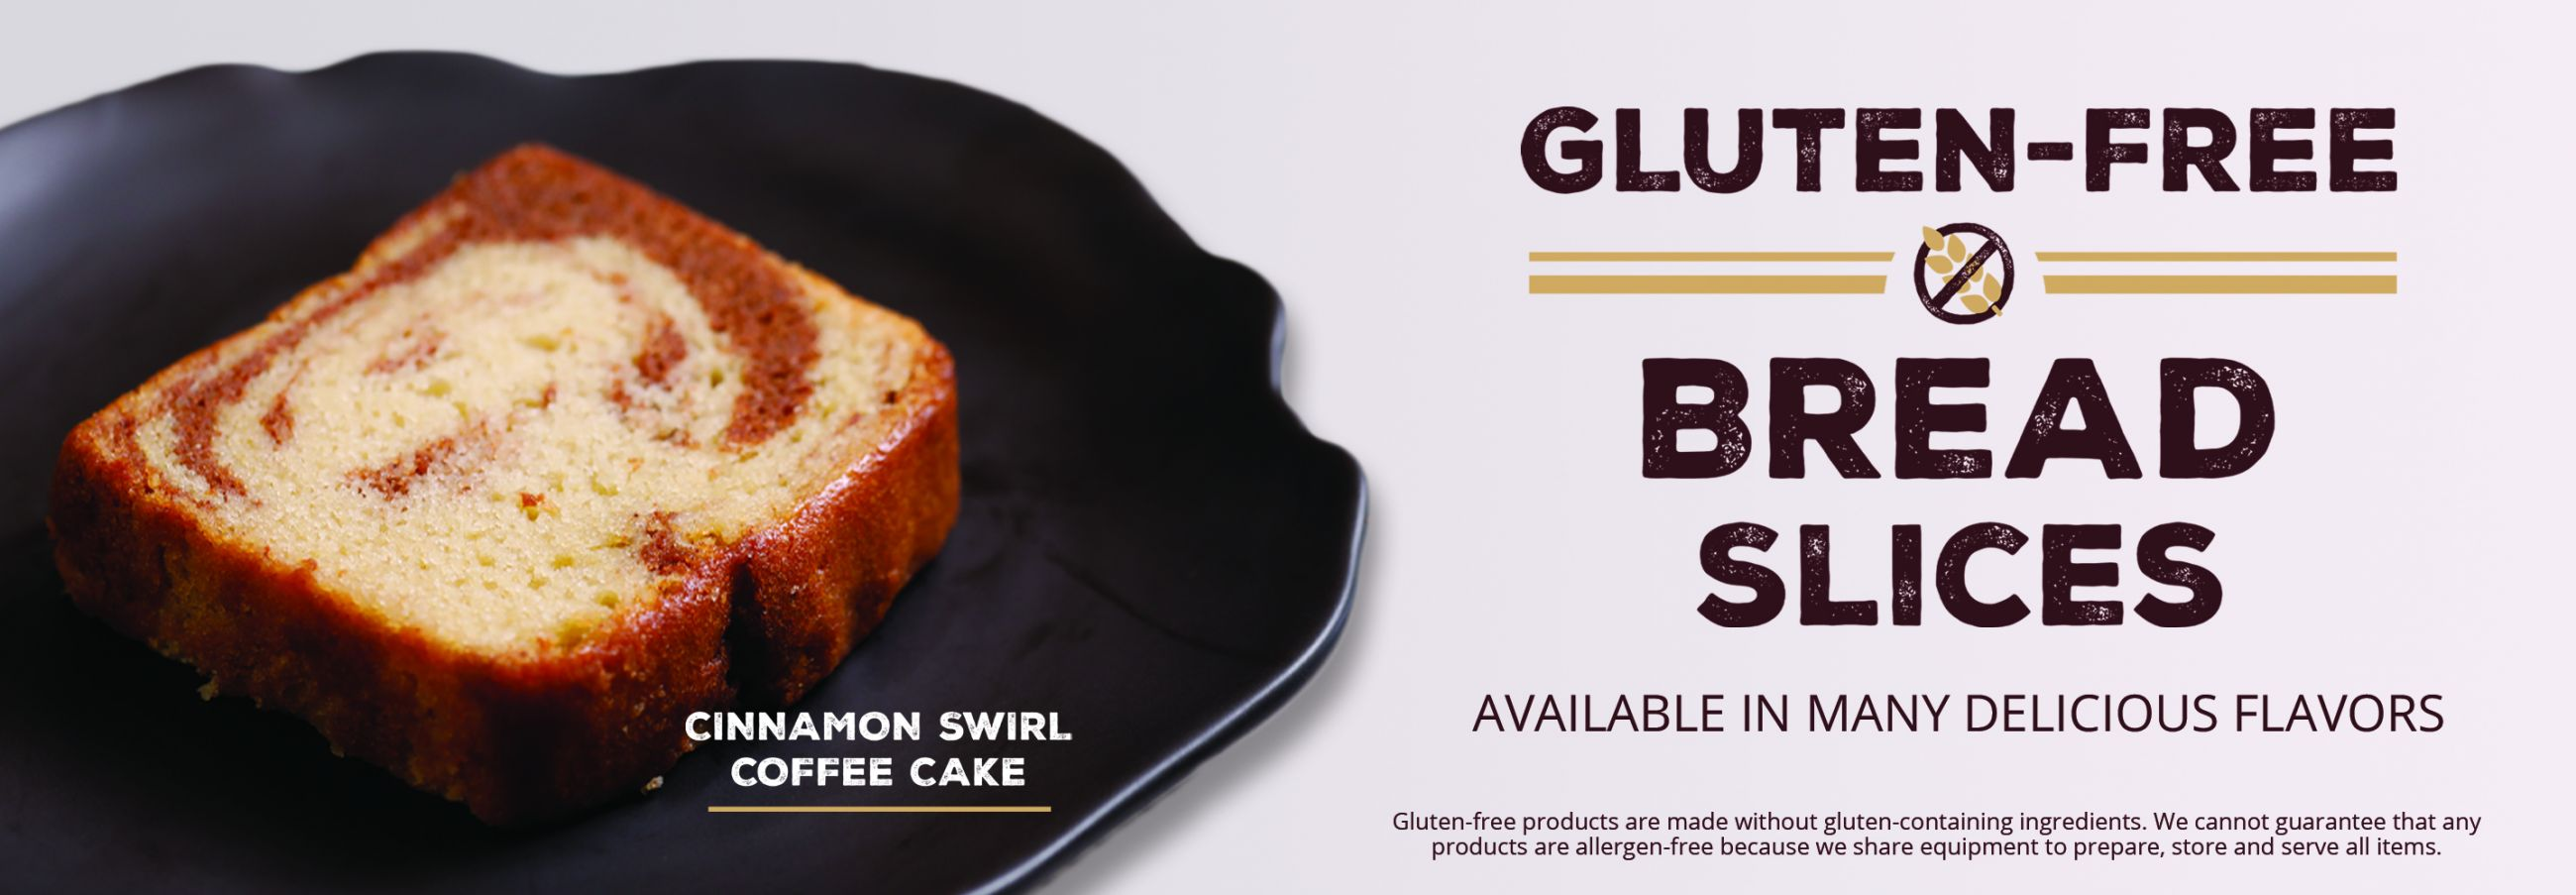 Diverse menu of delicious food items including a variety of gluten-free bread slices